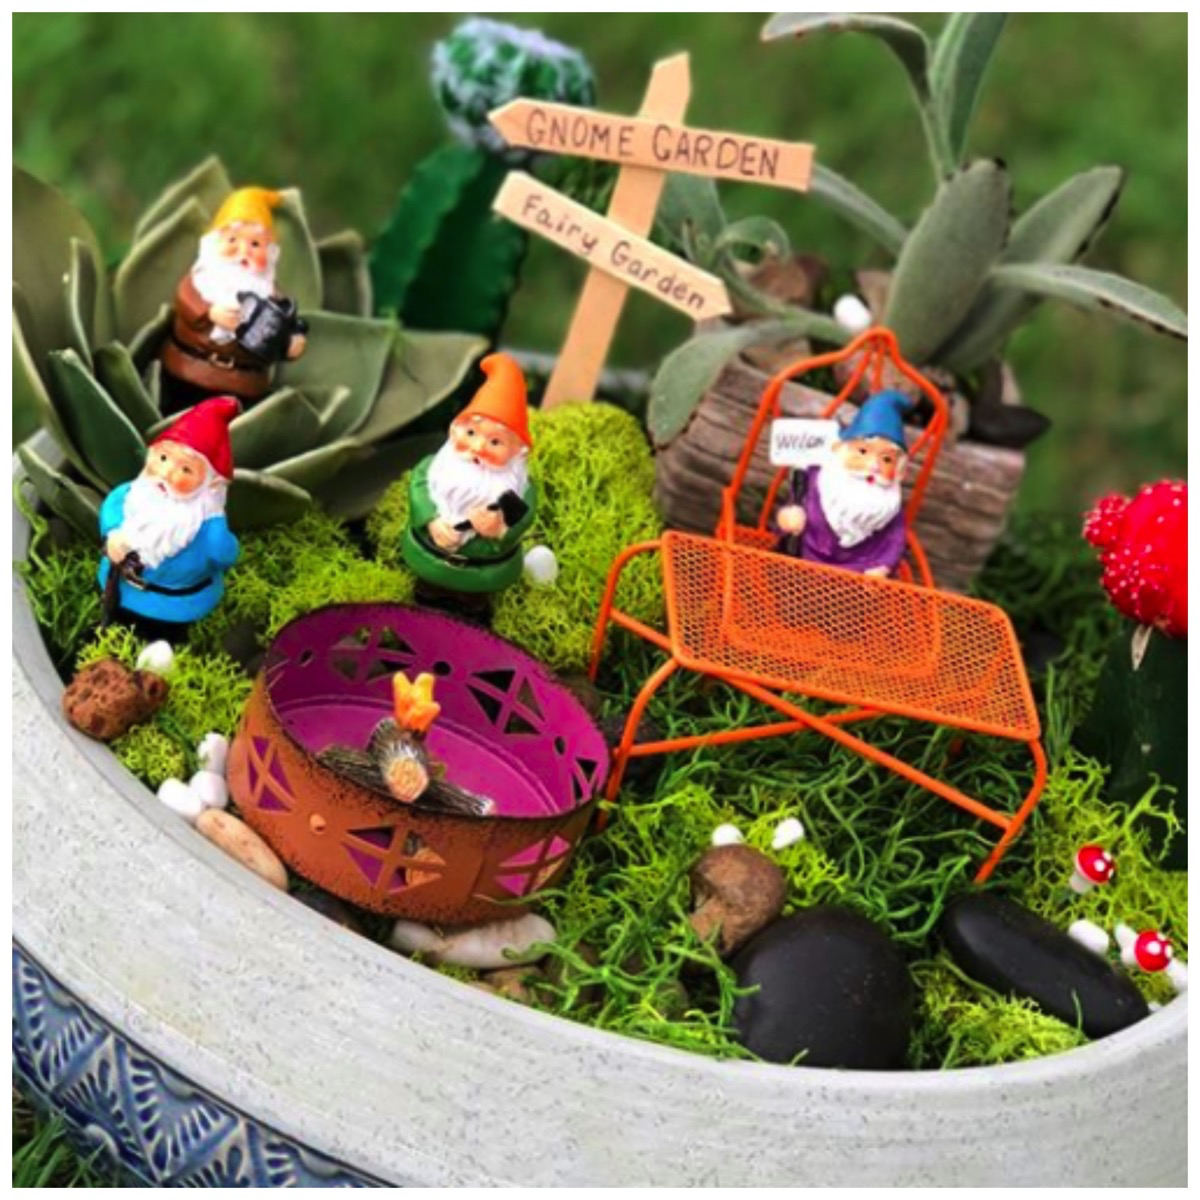 Garden Tips: Colorful and Whimsical Gnome Garden Inspiration for Your Home Yard